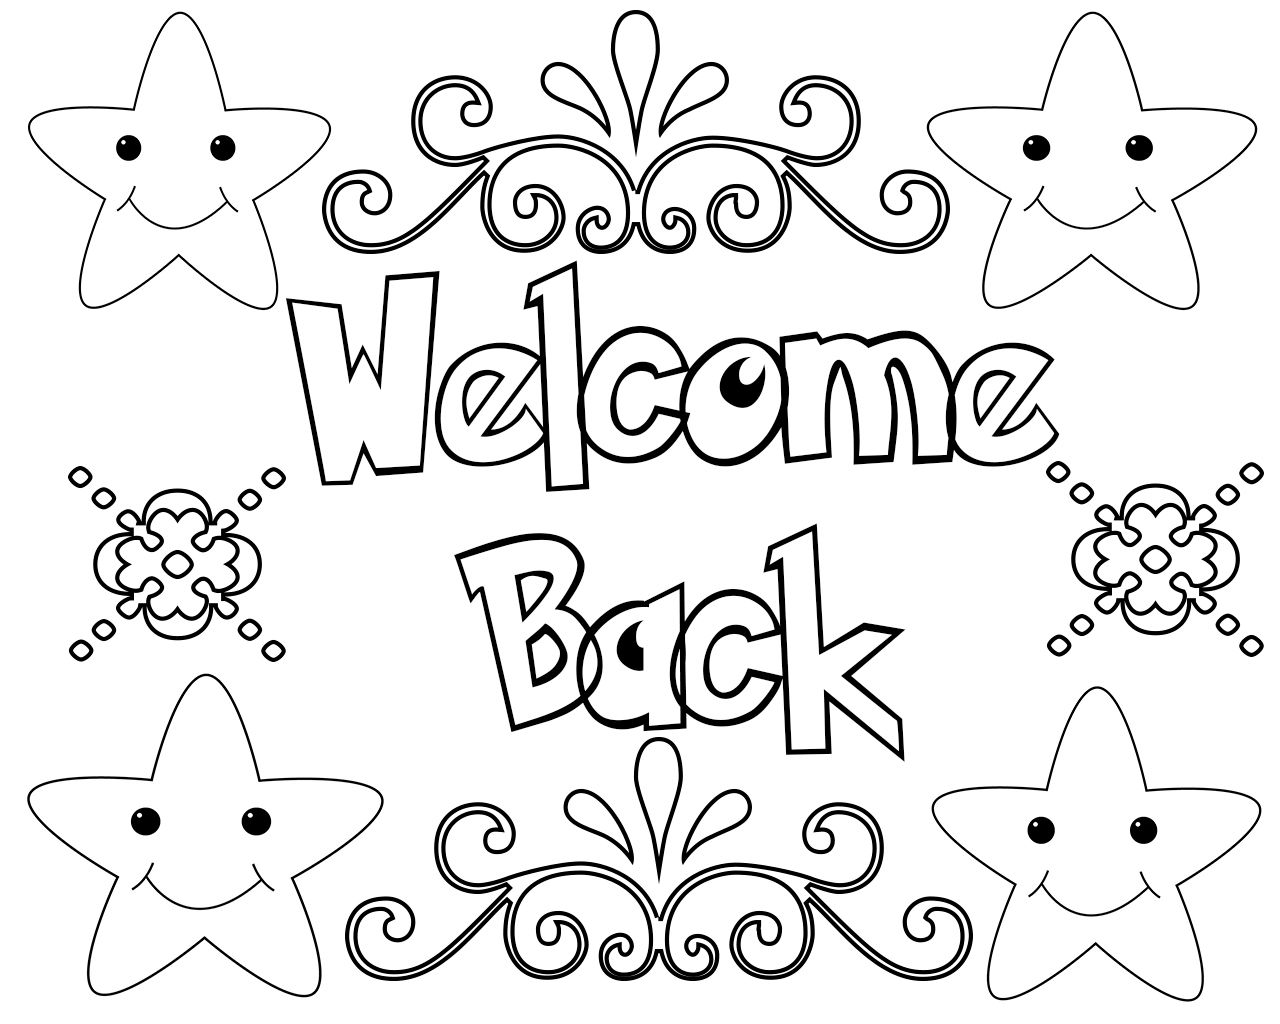 Welcome Back Coloring Pages Free Coloring Pages Printable